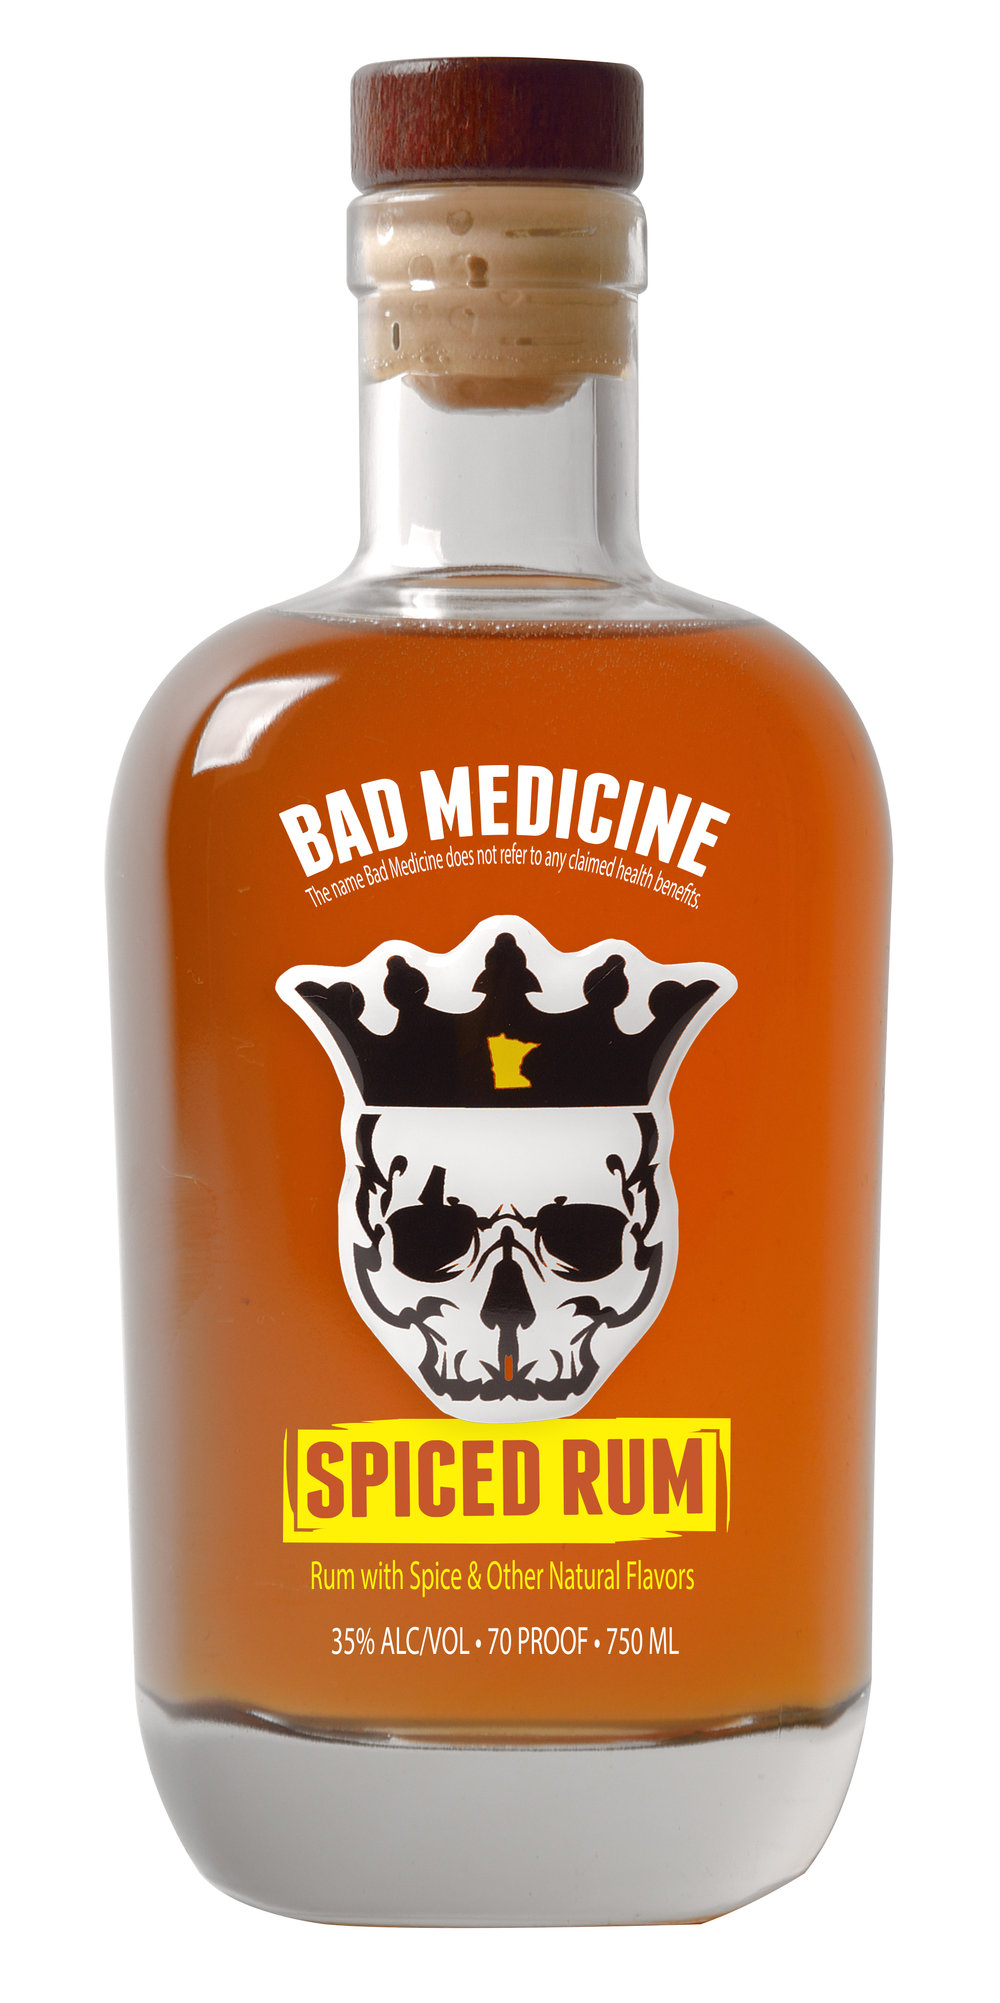 Bad Medicine Spiced Rum